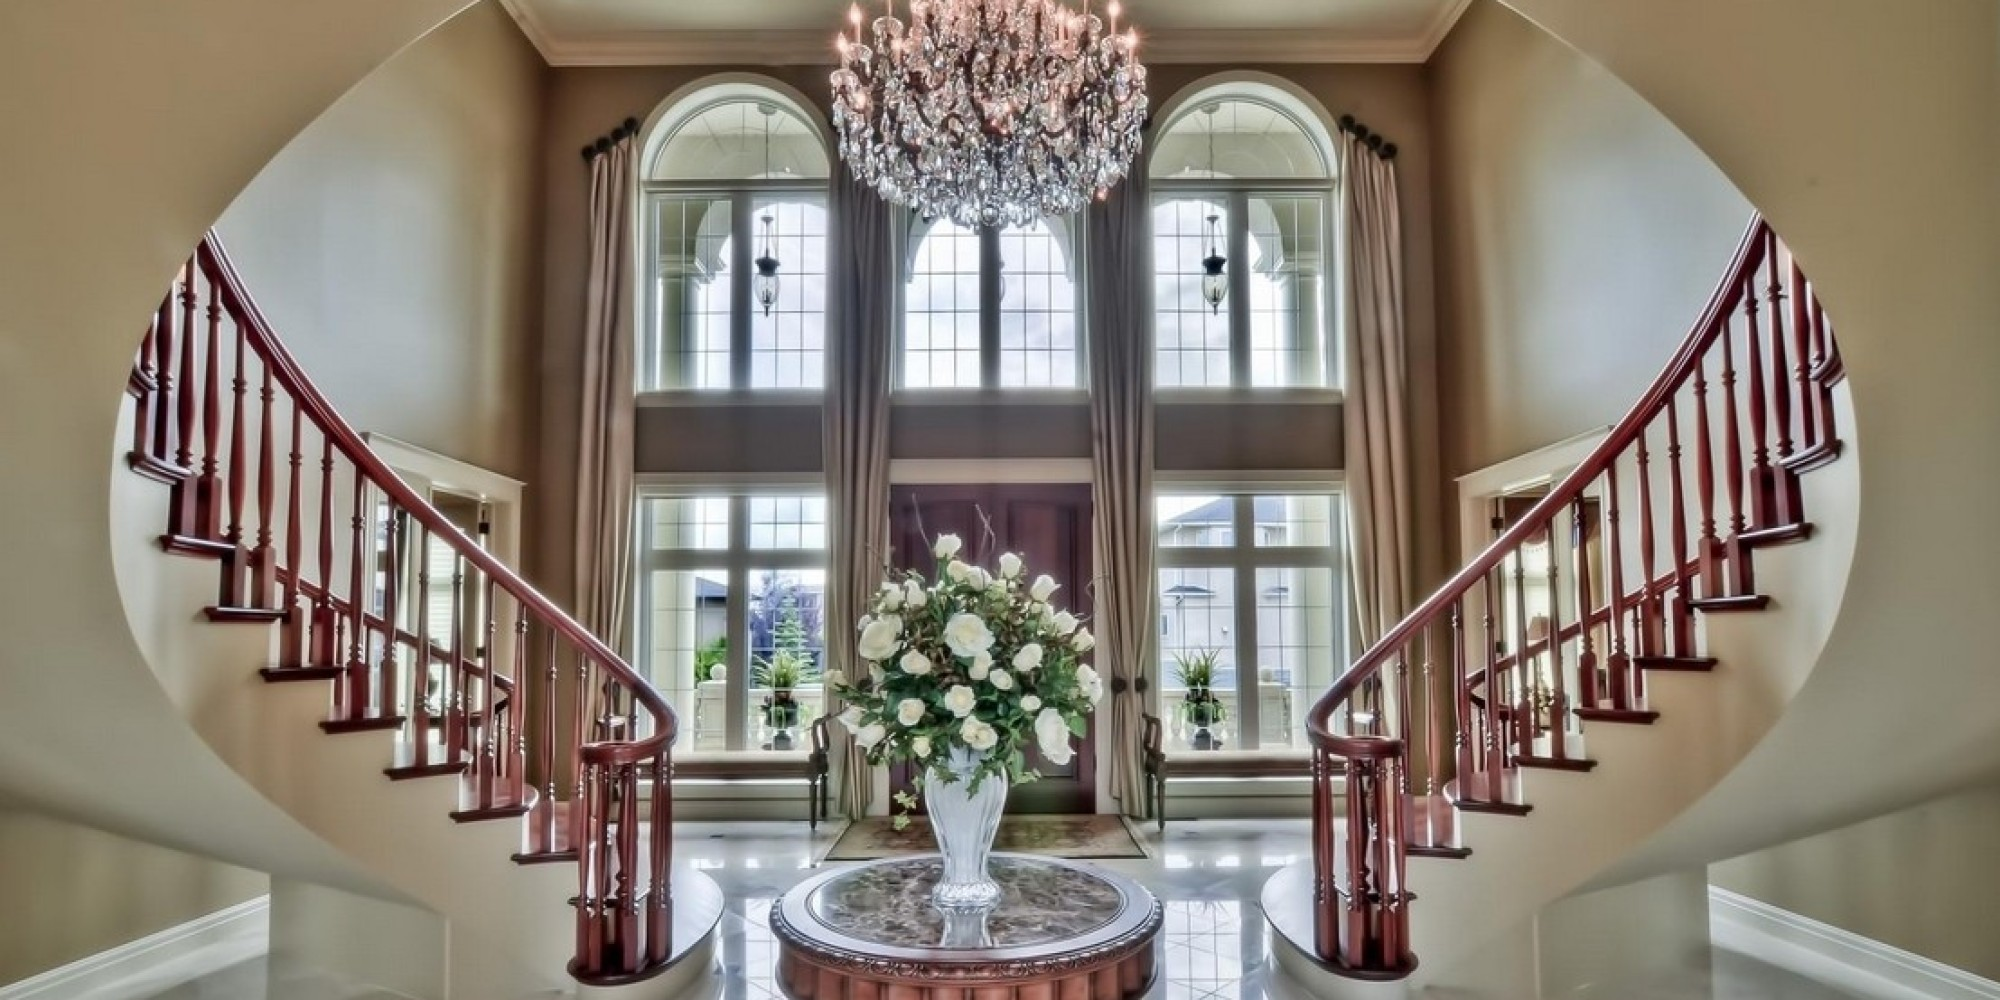 Most expensive houses for sale in canada feb 2014 edition for Expensive homes for sale in the world